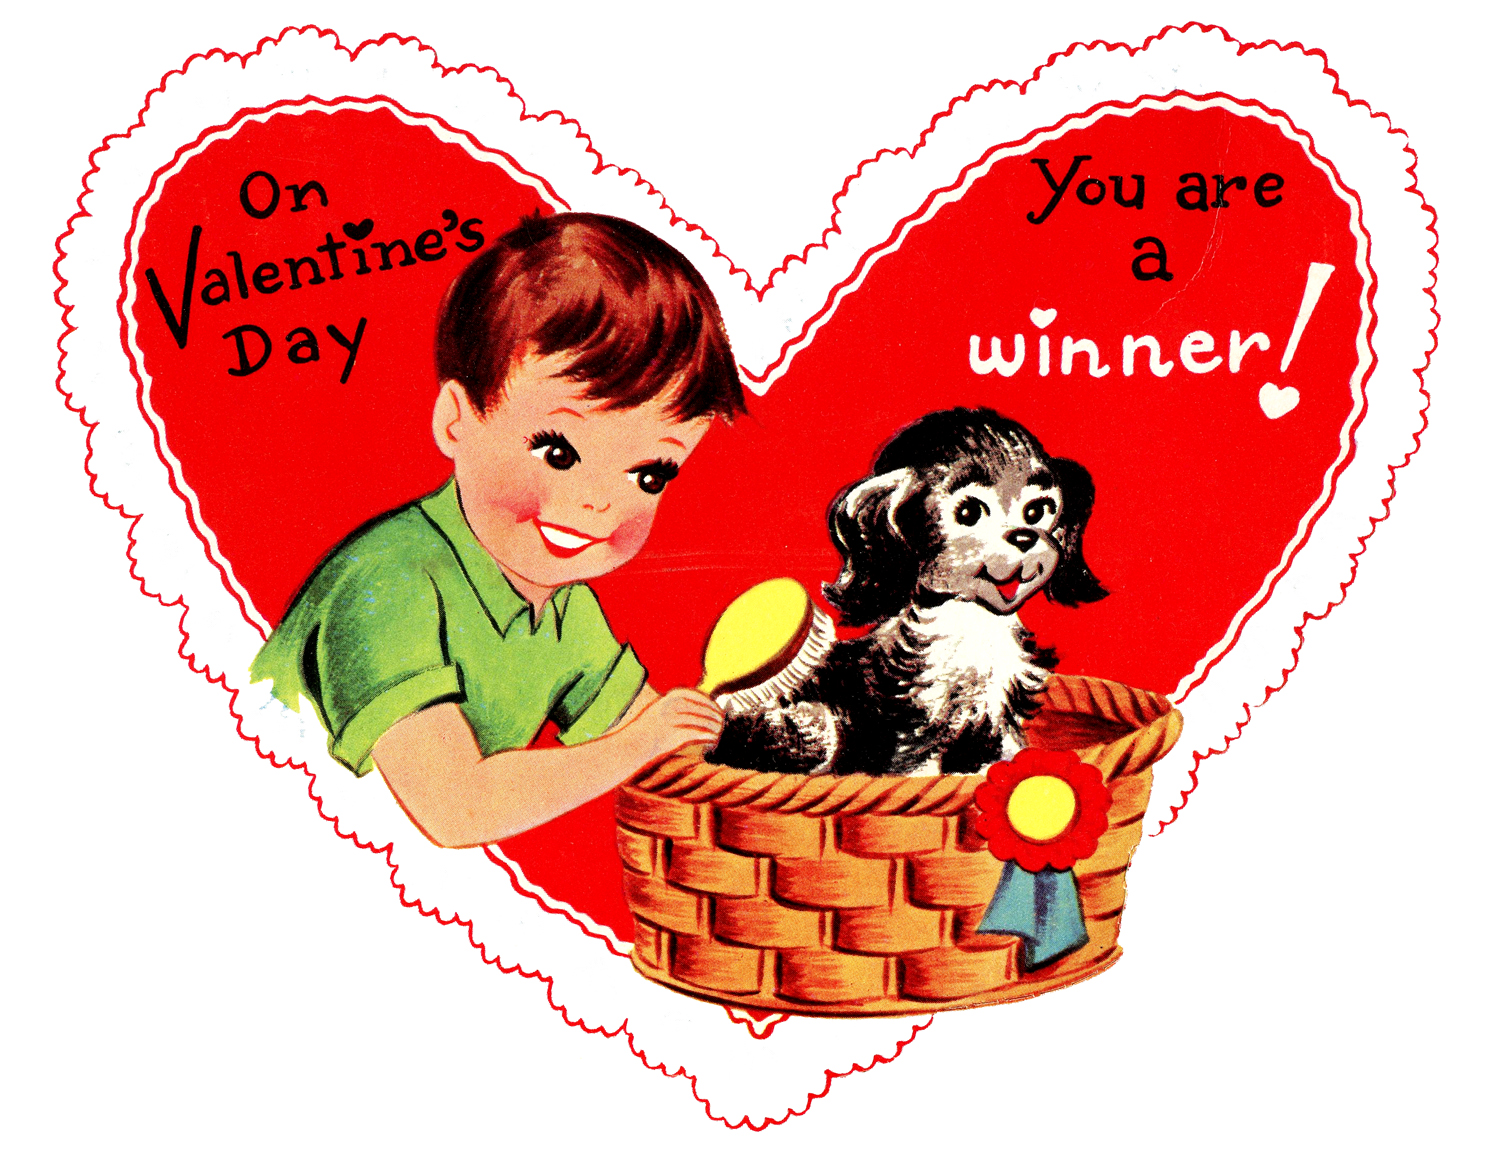 Retro Valentine Boy with Dog